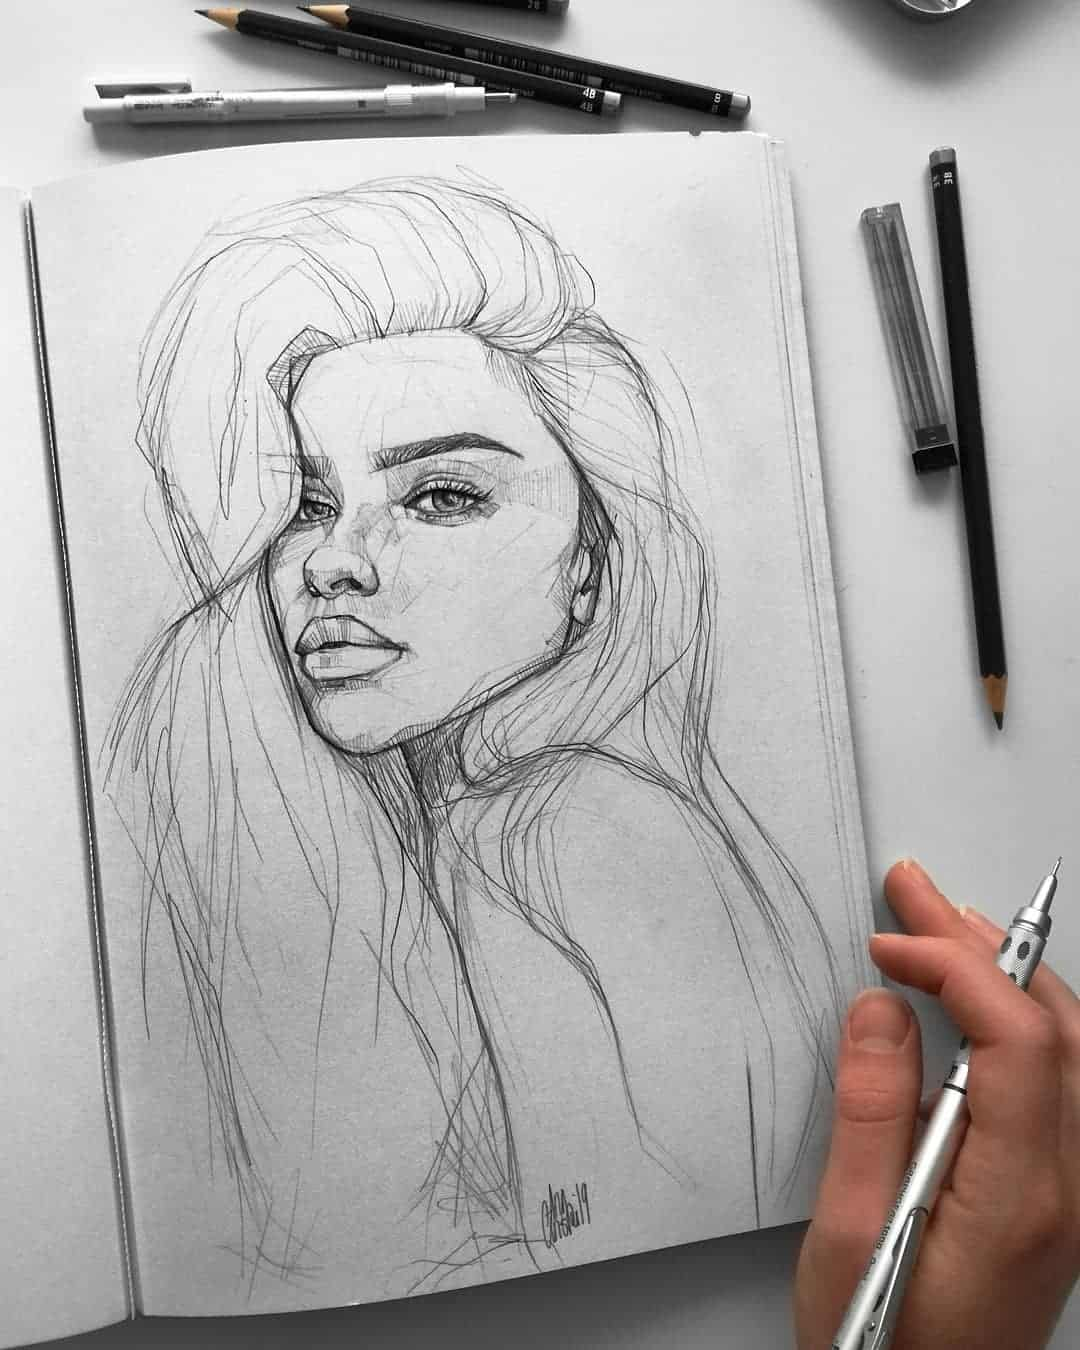 Creative Unique Sketches : creative, unique, sketches, Pencil, Sketch, Artist, Cinski, ARTWOONZ, Drawings, Sketches, Simple,, Drawings,, Creative